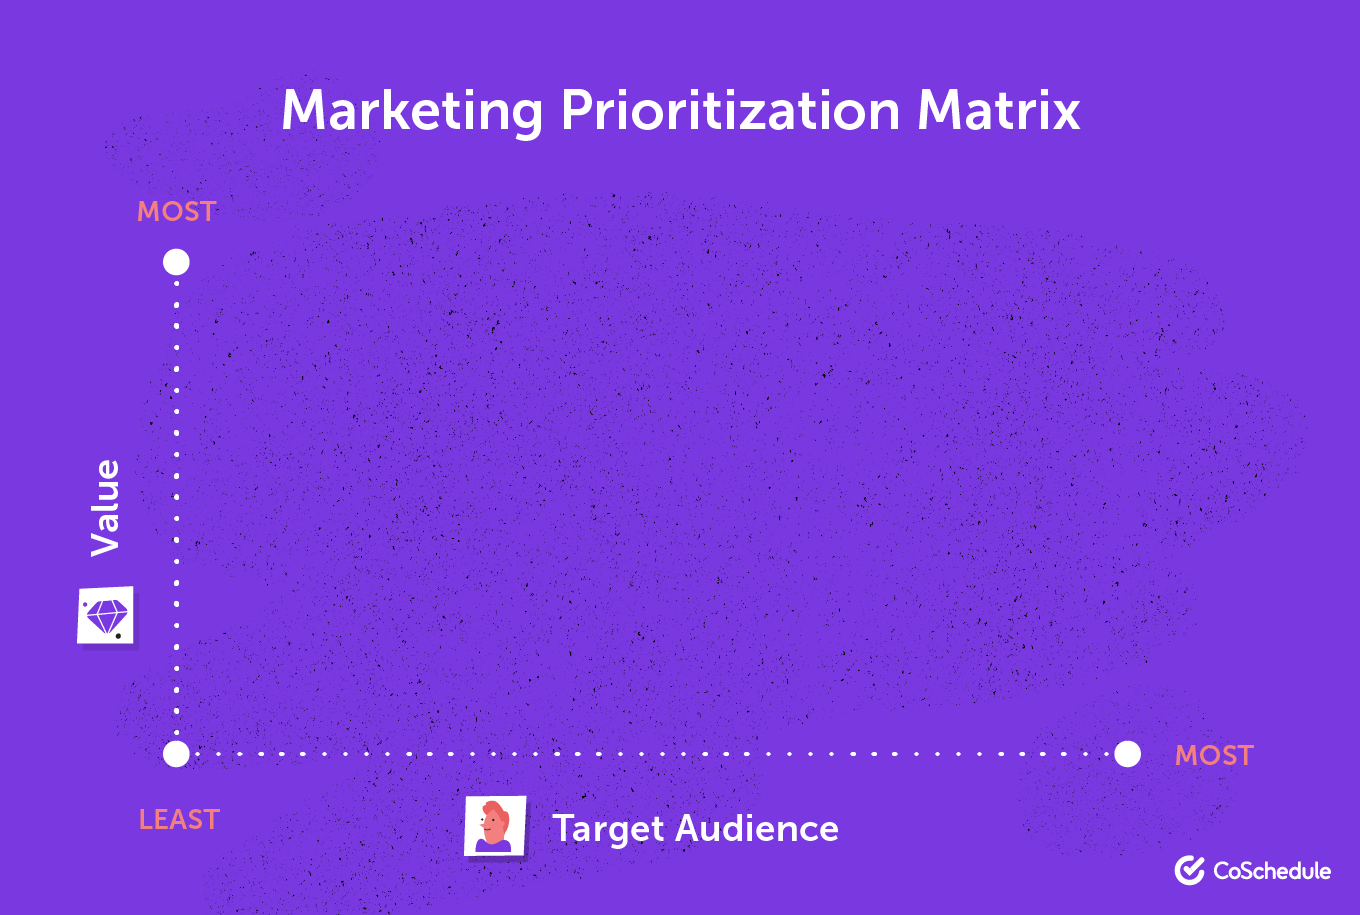 Another blank project matrix with value and target audience on each axis